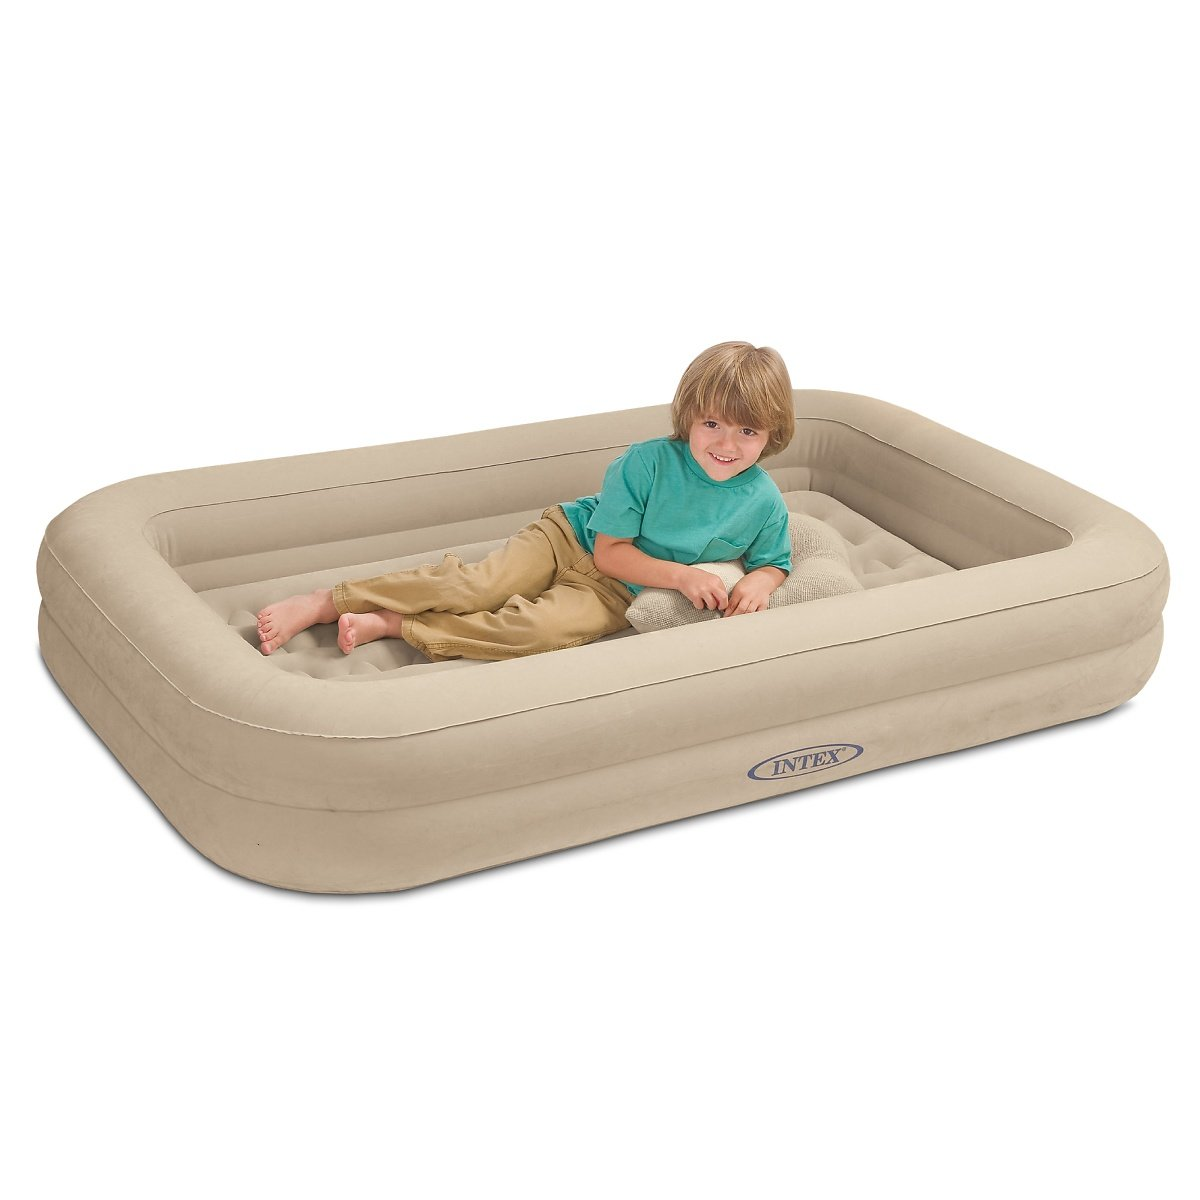 Baby bed camping - Amazon Com Intex Kidz Travel Bed With Hand Pump Health Personal Care